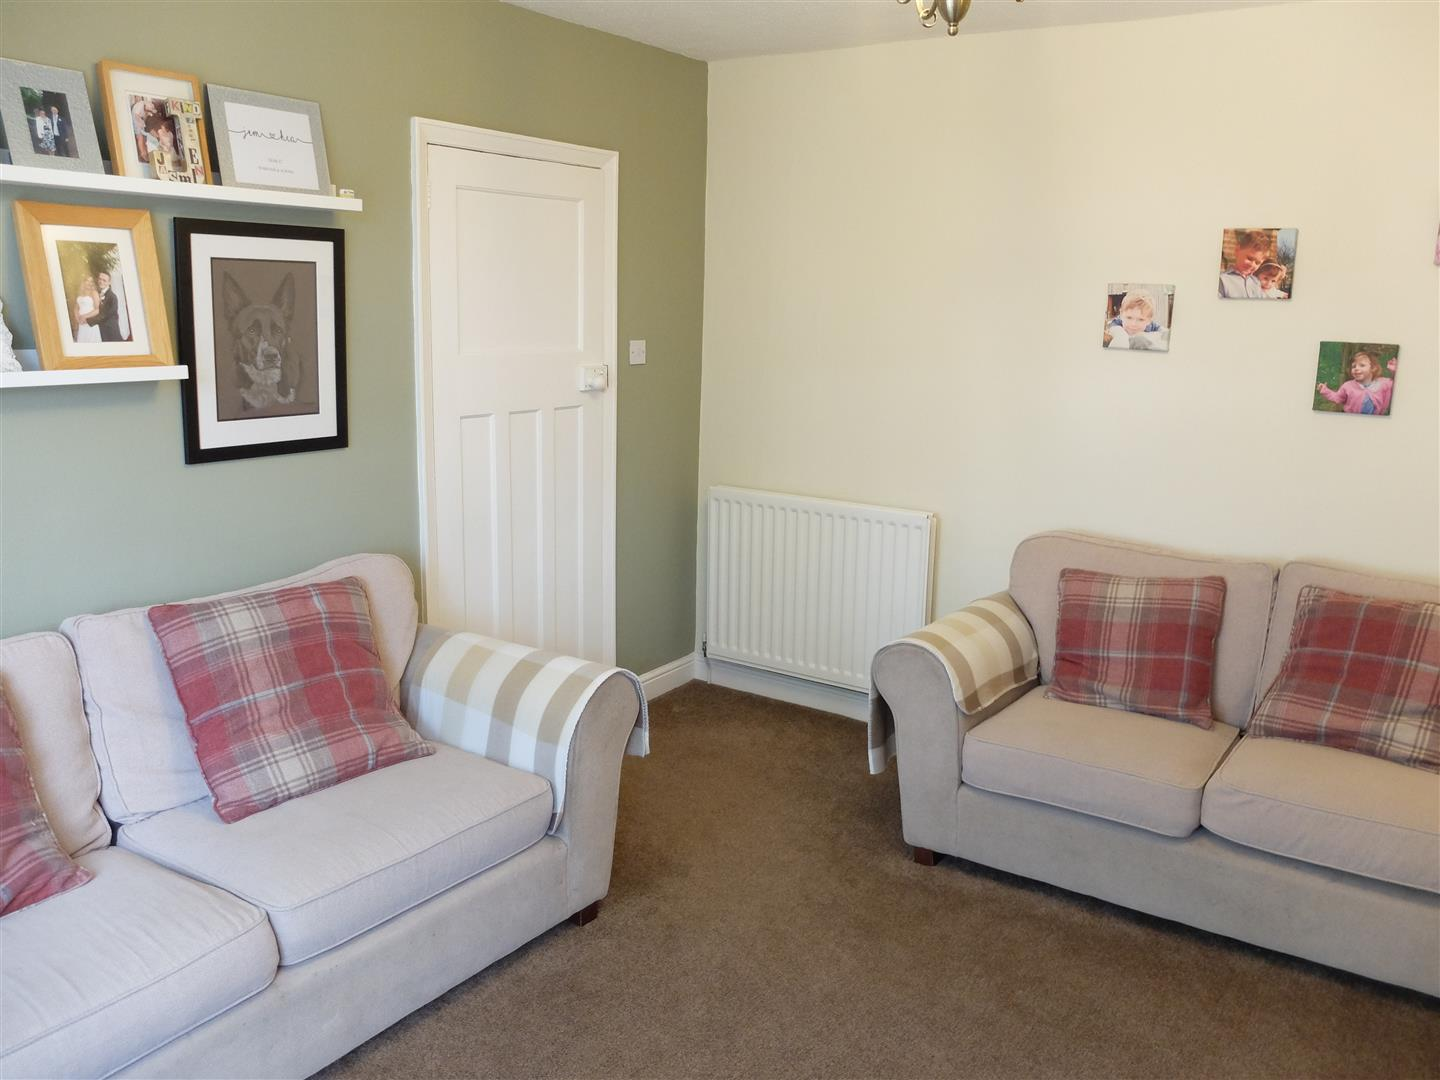 3 Bedrooms House - Semi-Detached For Sale 44 Currock Park Avenue Carlisle 139,000